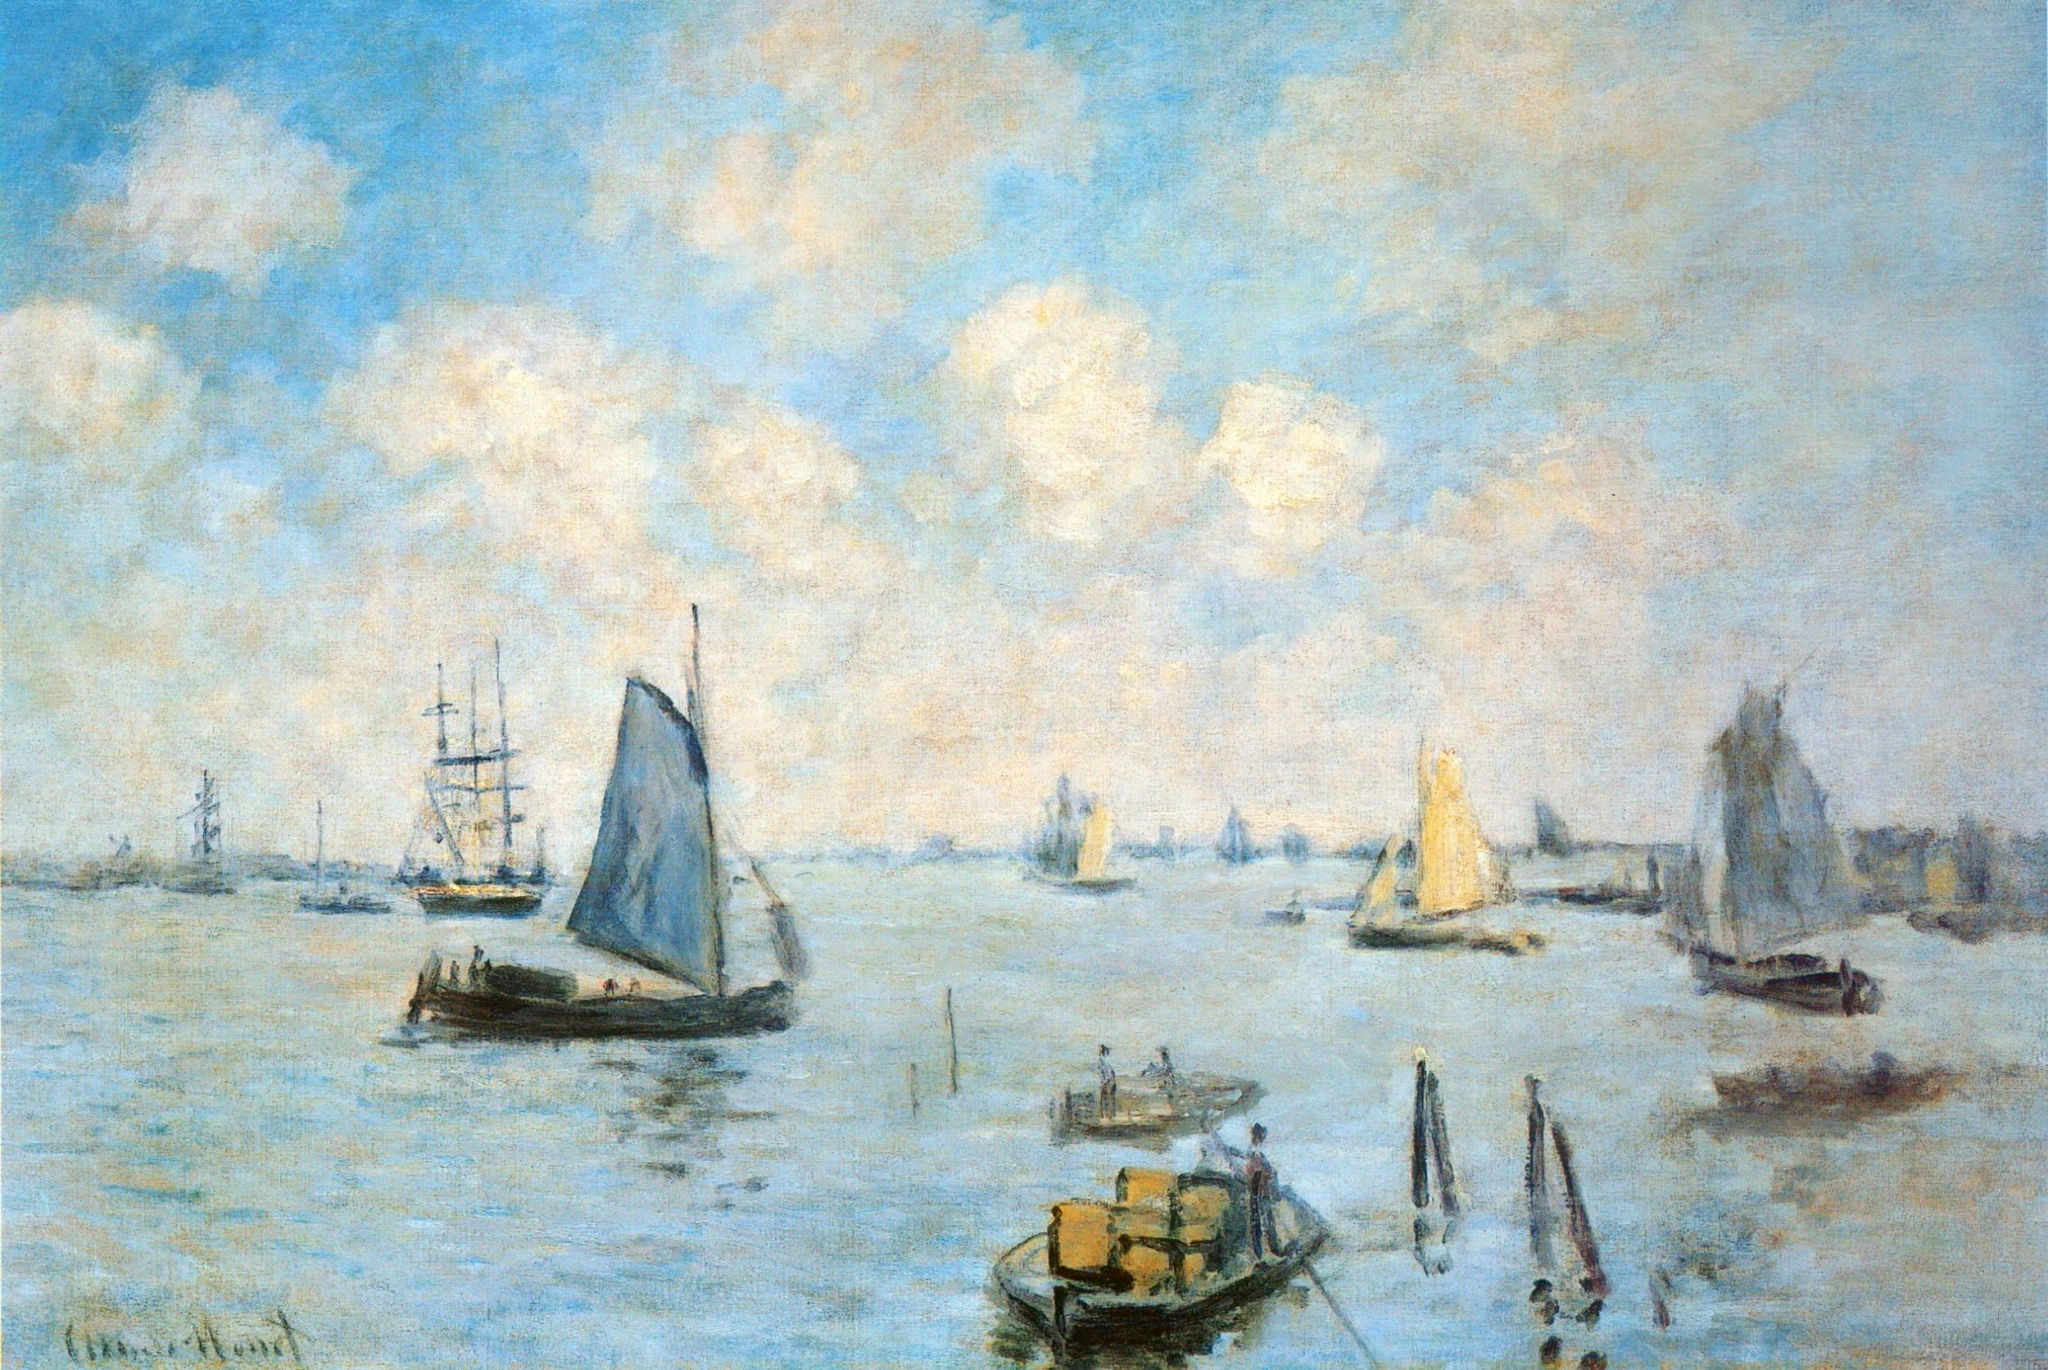 The Sea at Amsterdam, by Claude Monet, circa 1874